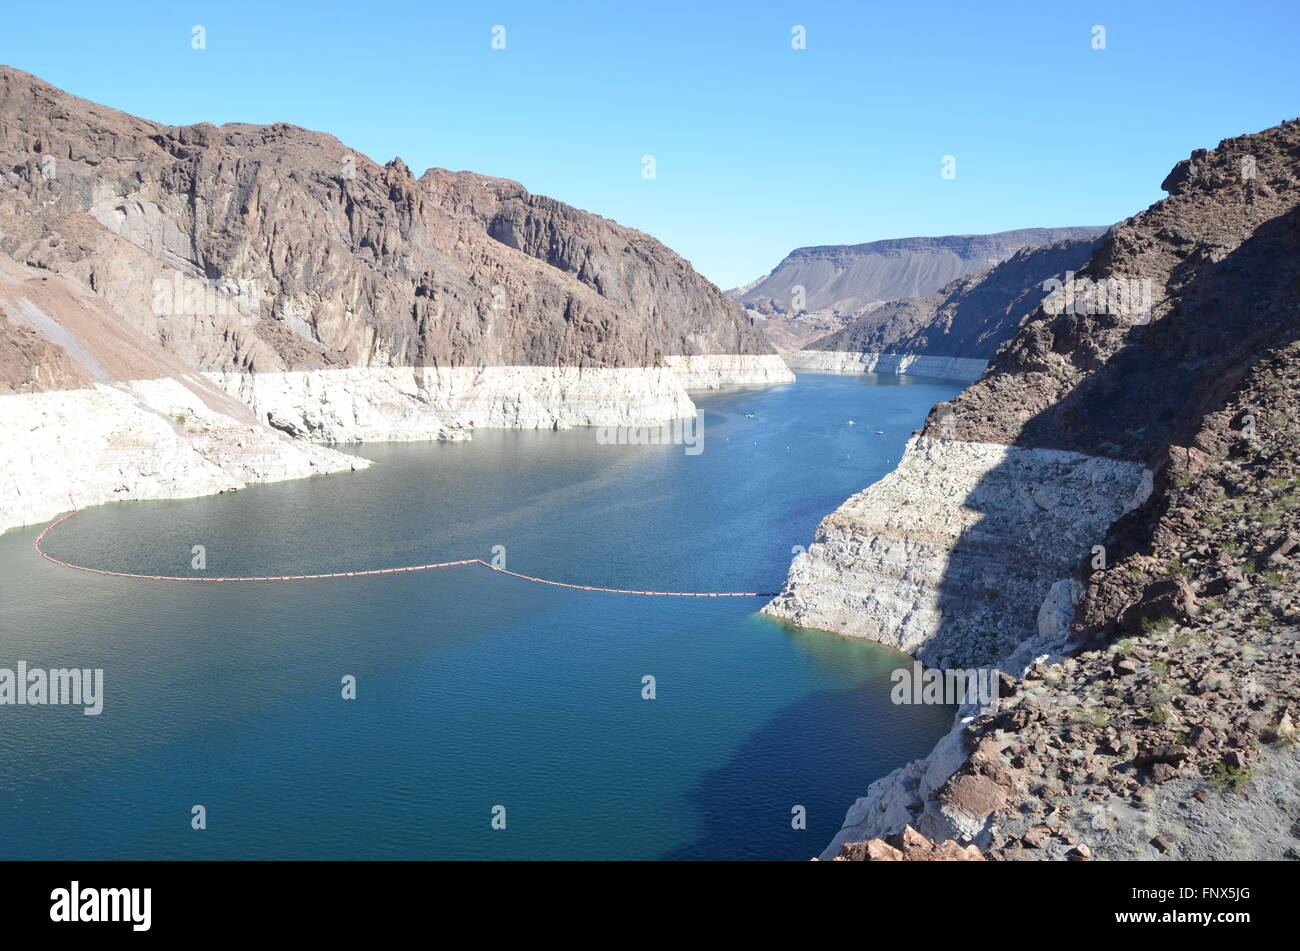 View of a component of the Hoover Dam facility on the border of Nevada and Arizona Stock Photo